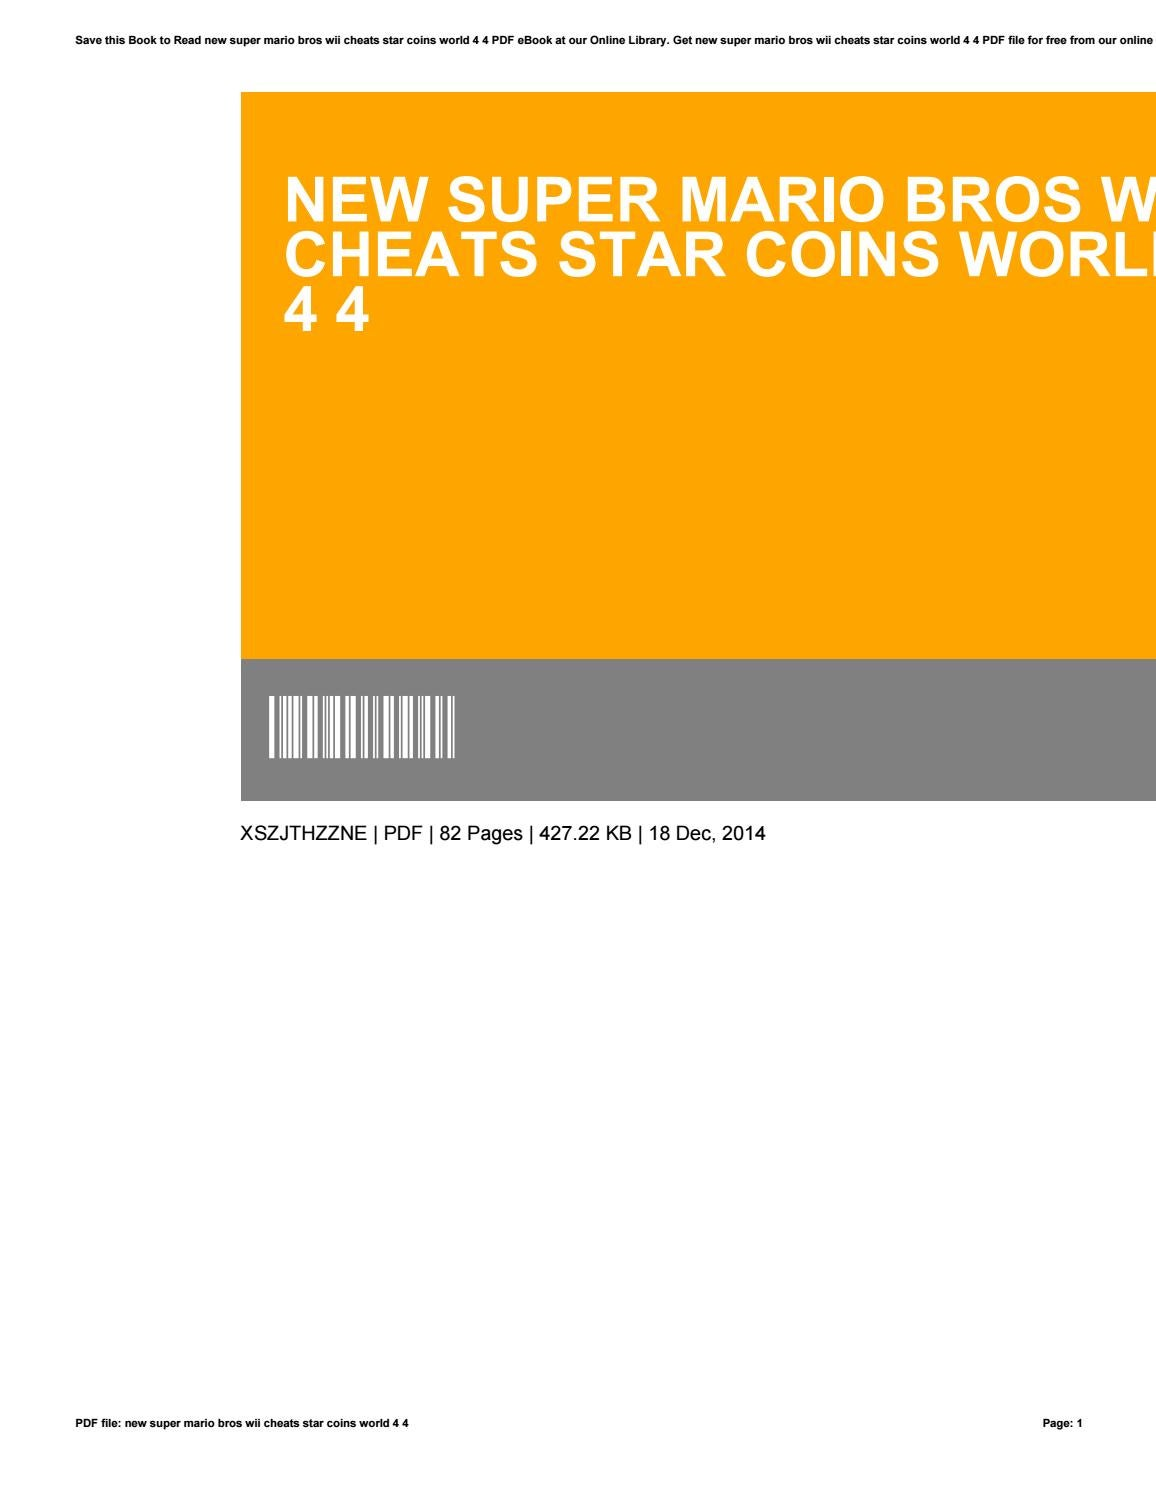 New super mario bros wii cheats star coins world 4 4 by